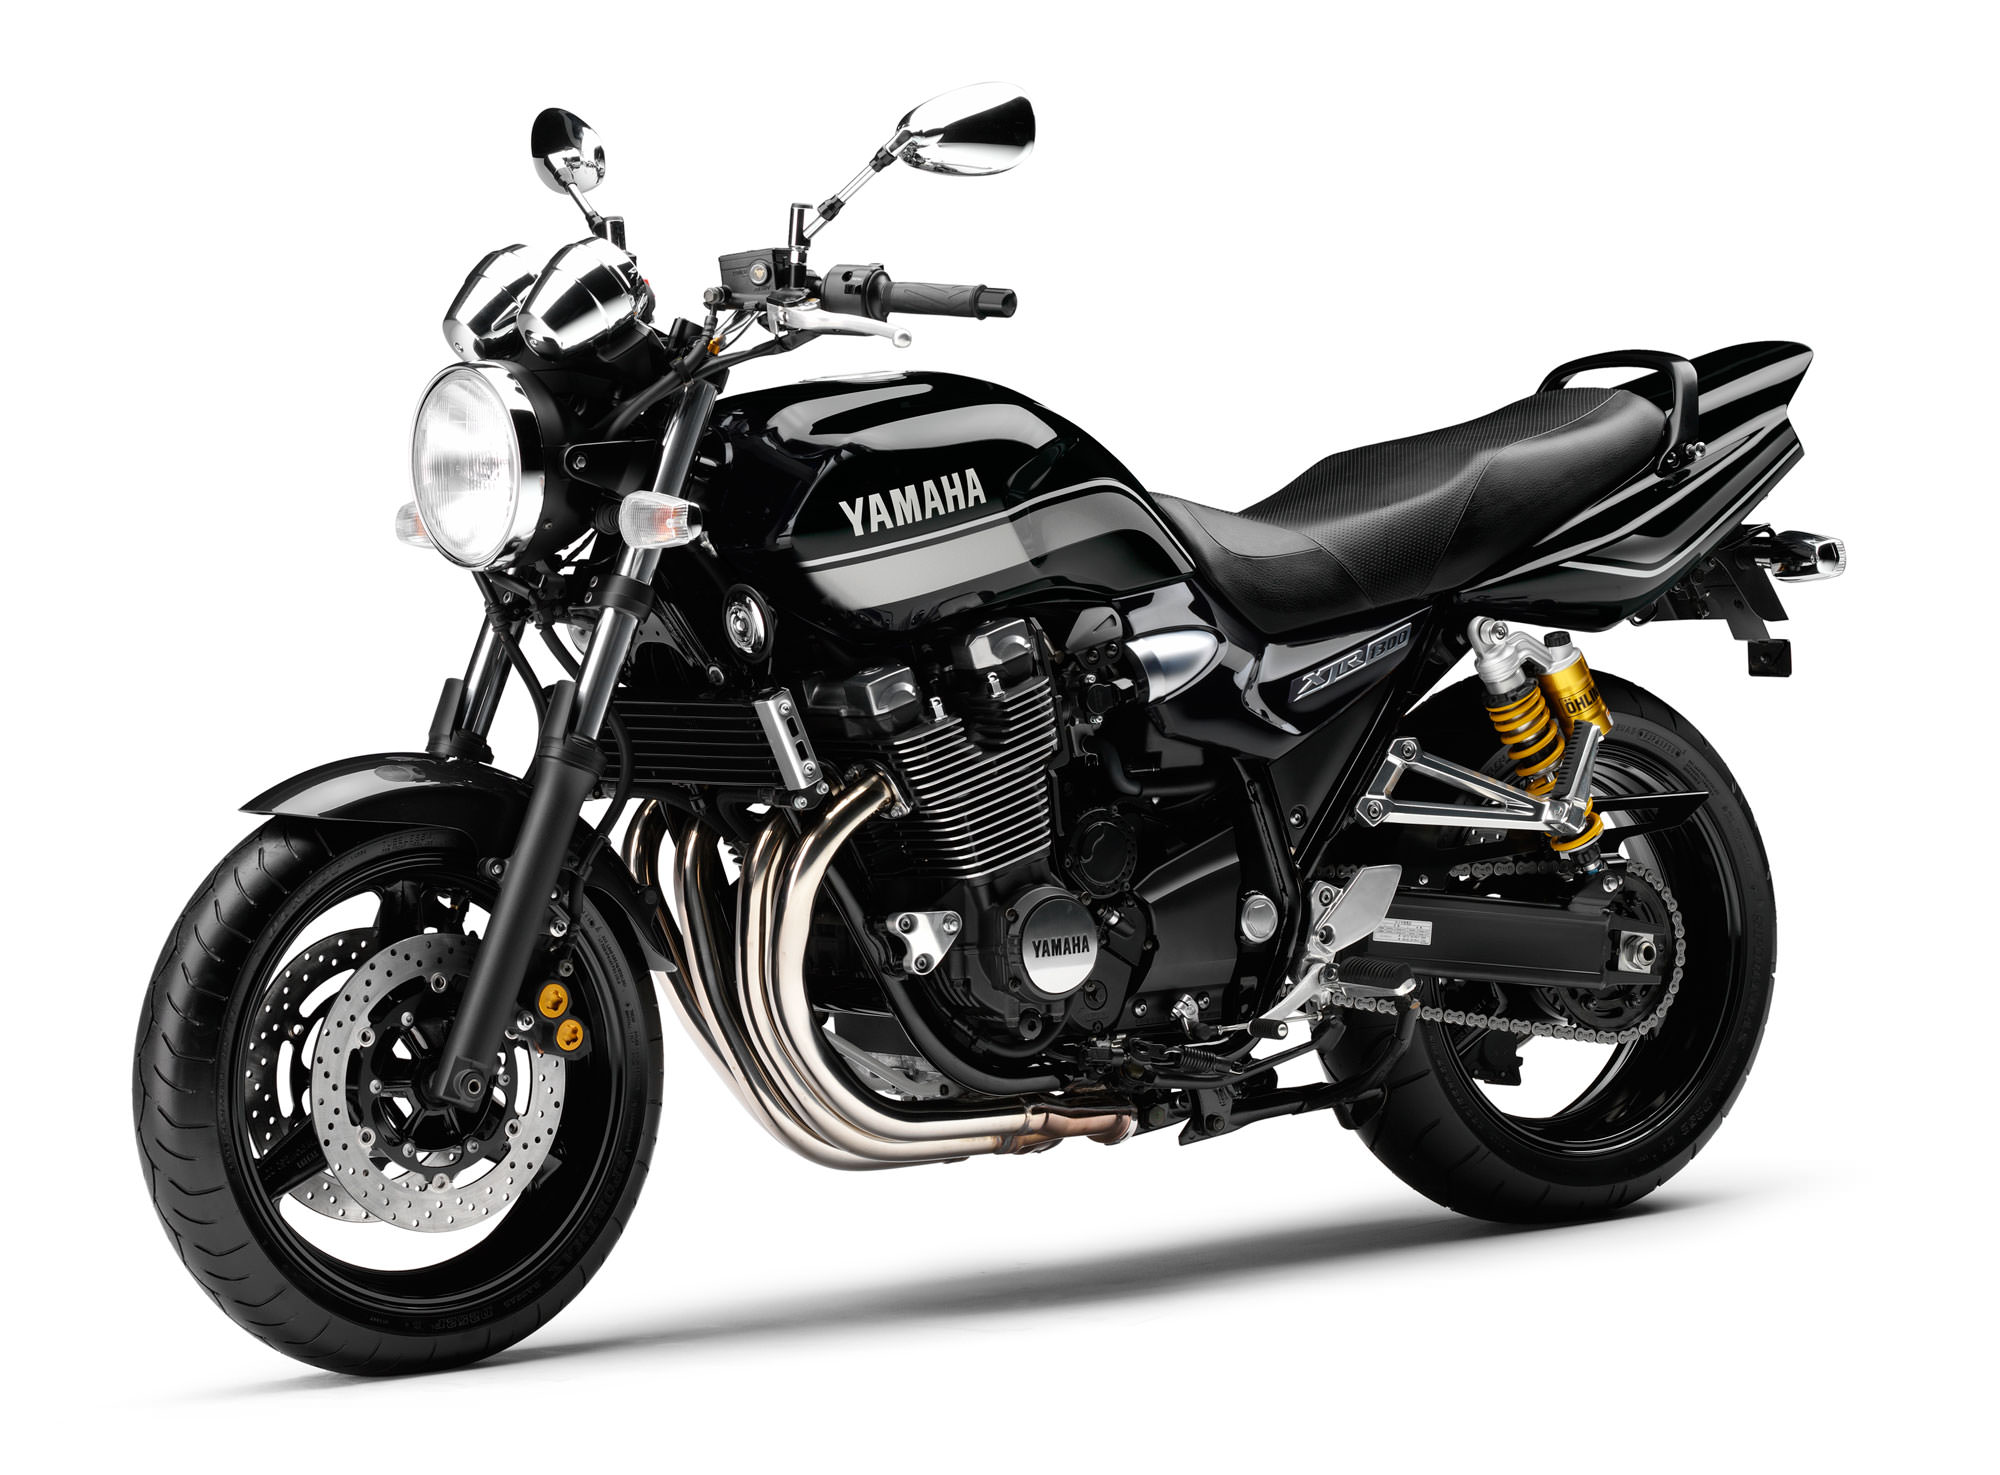 Yamaha xjr1300 photo - 8